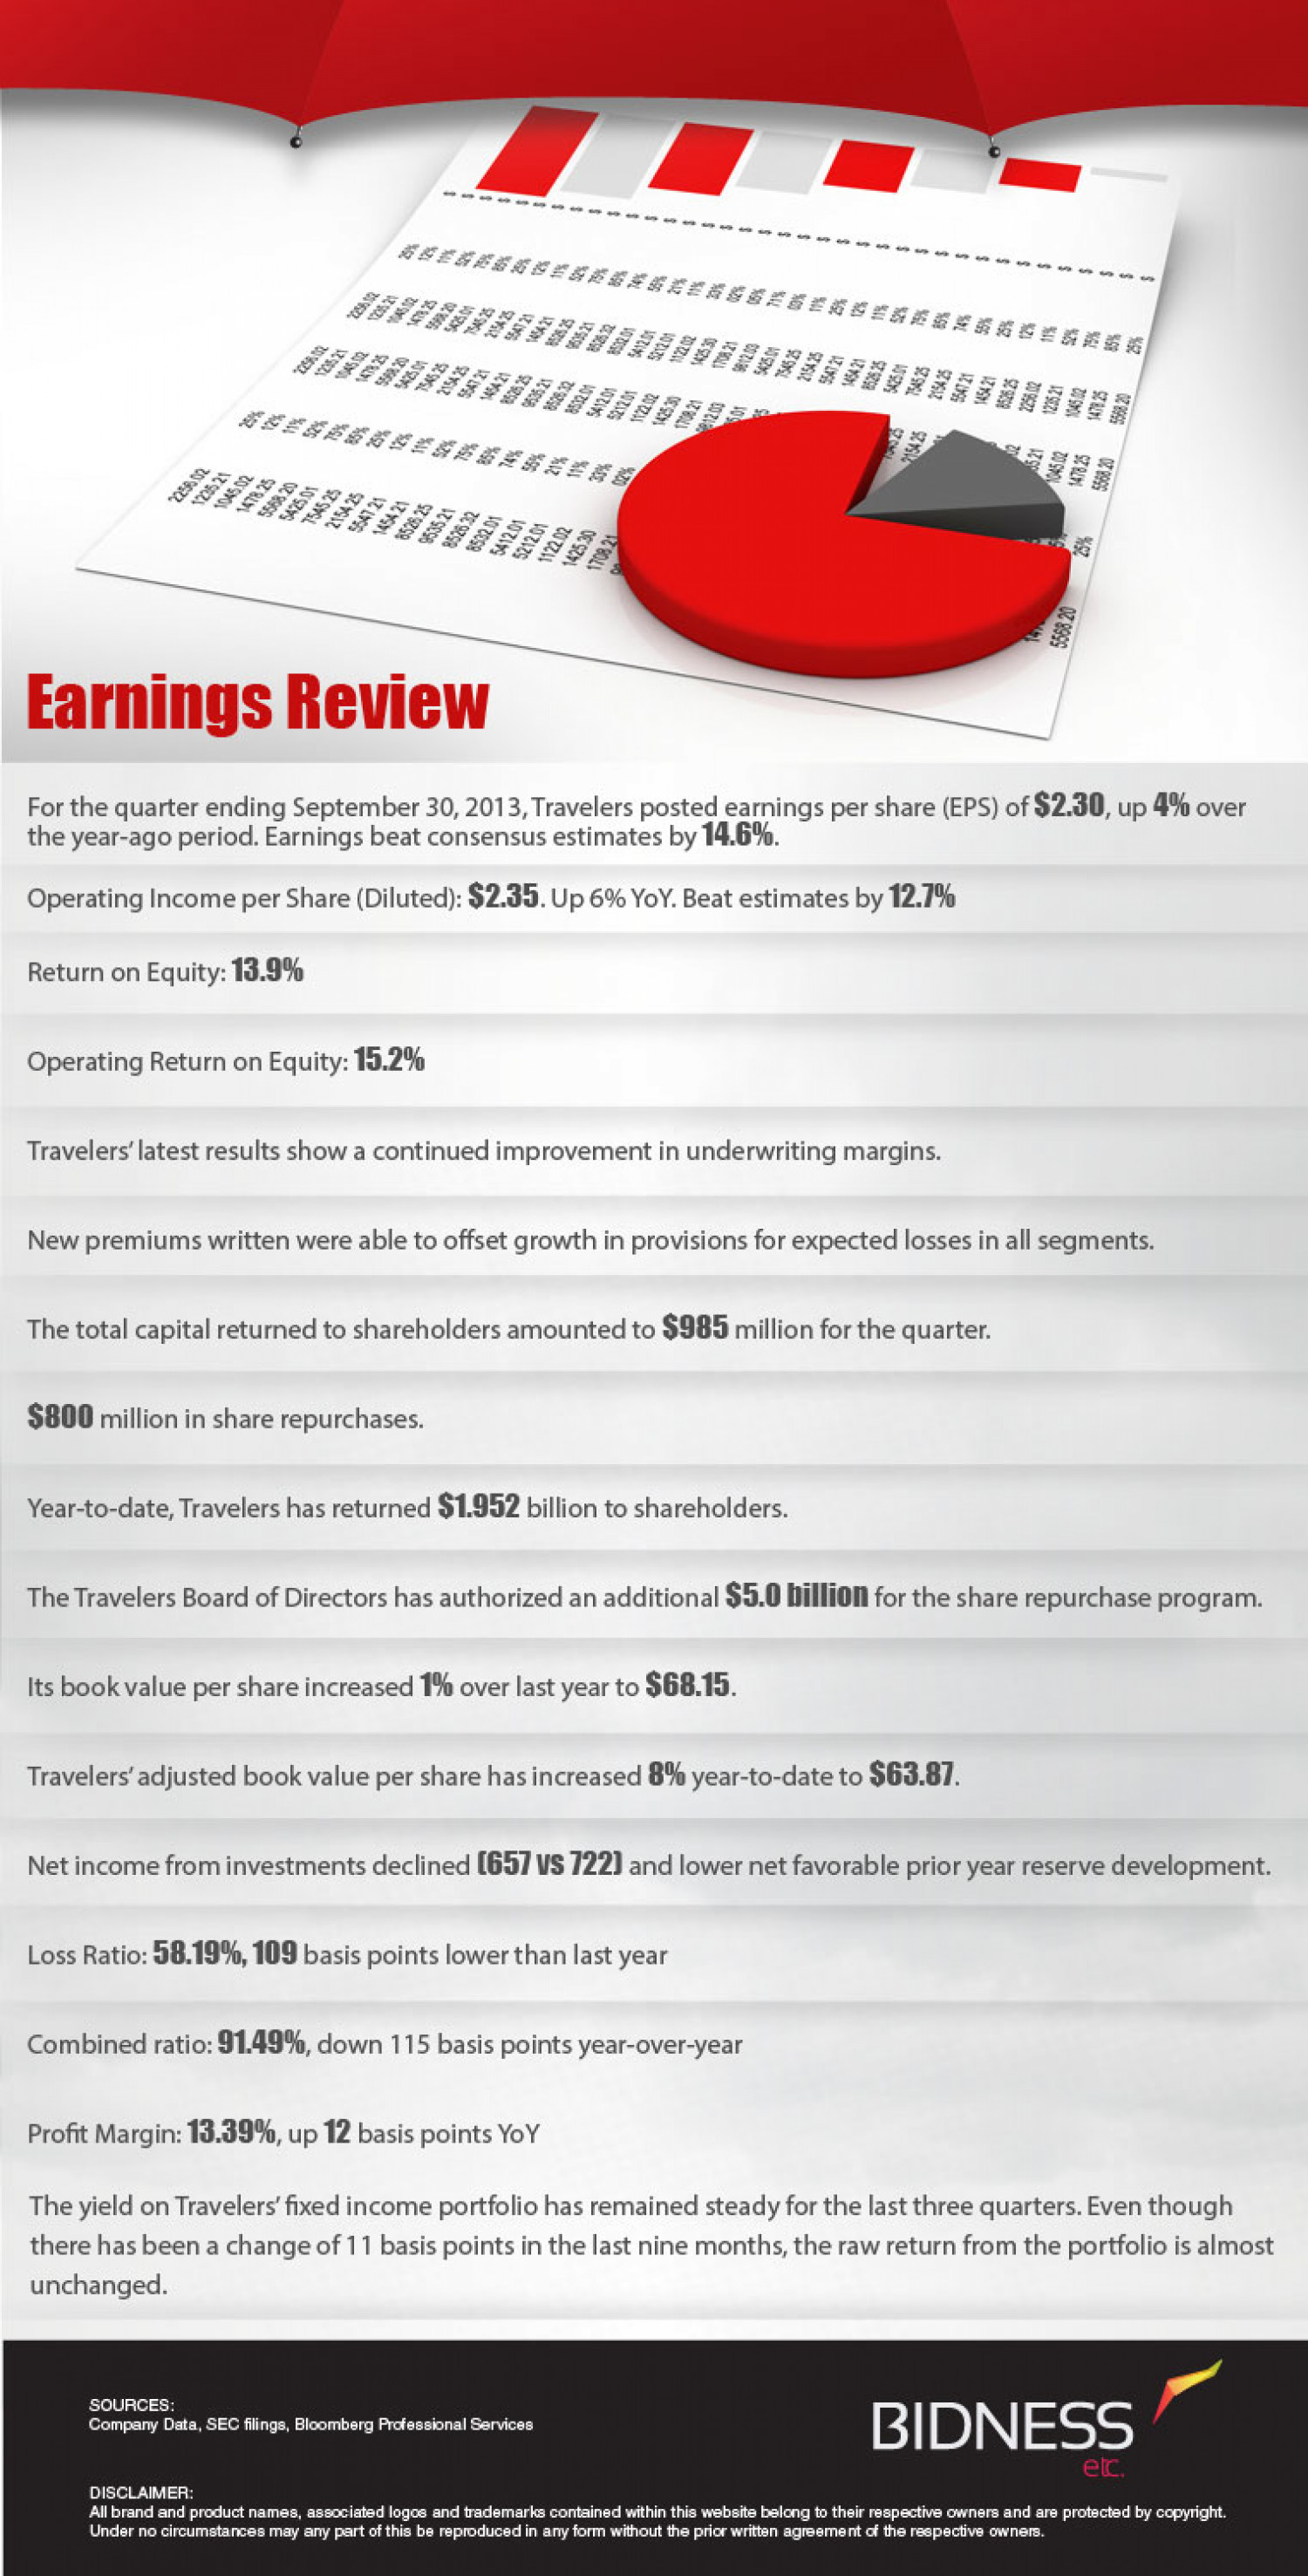 Travelers companies (TRV) Earnings Review Infographic